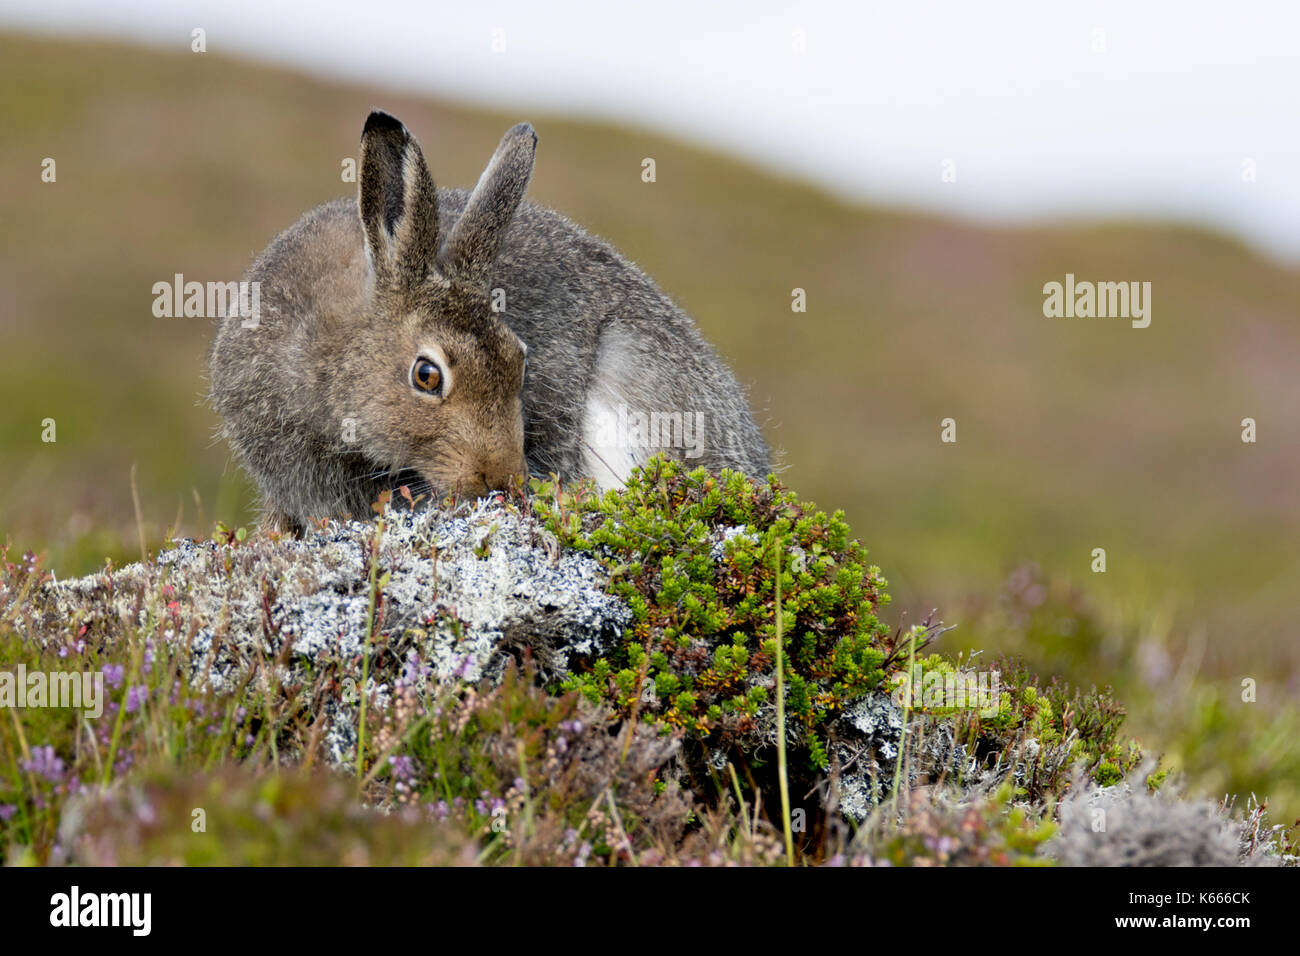 La liebre de montaña (Lepus timidus), Scottish highlands, agosto de 2017 Foto de stock